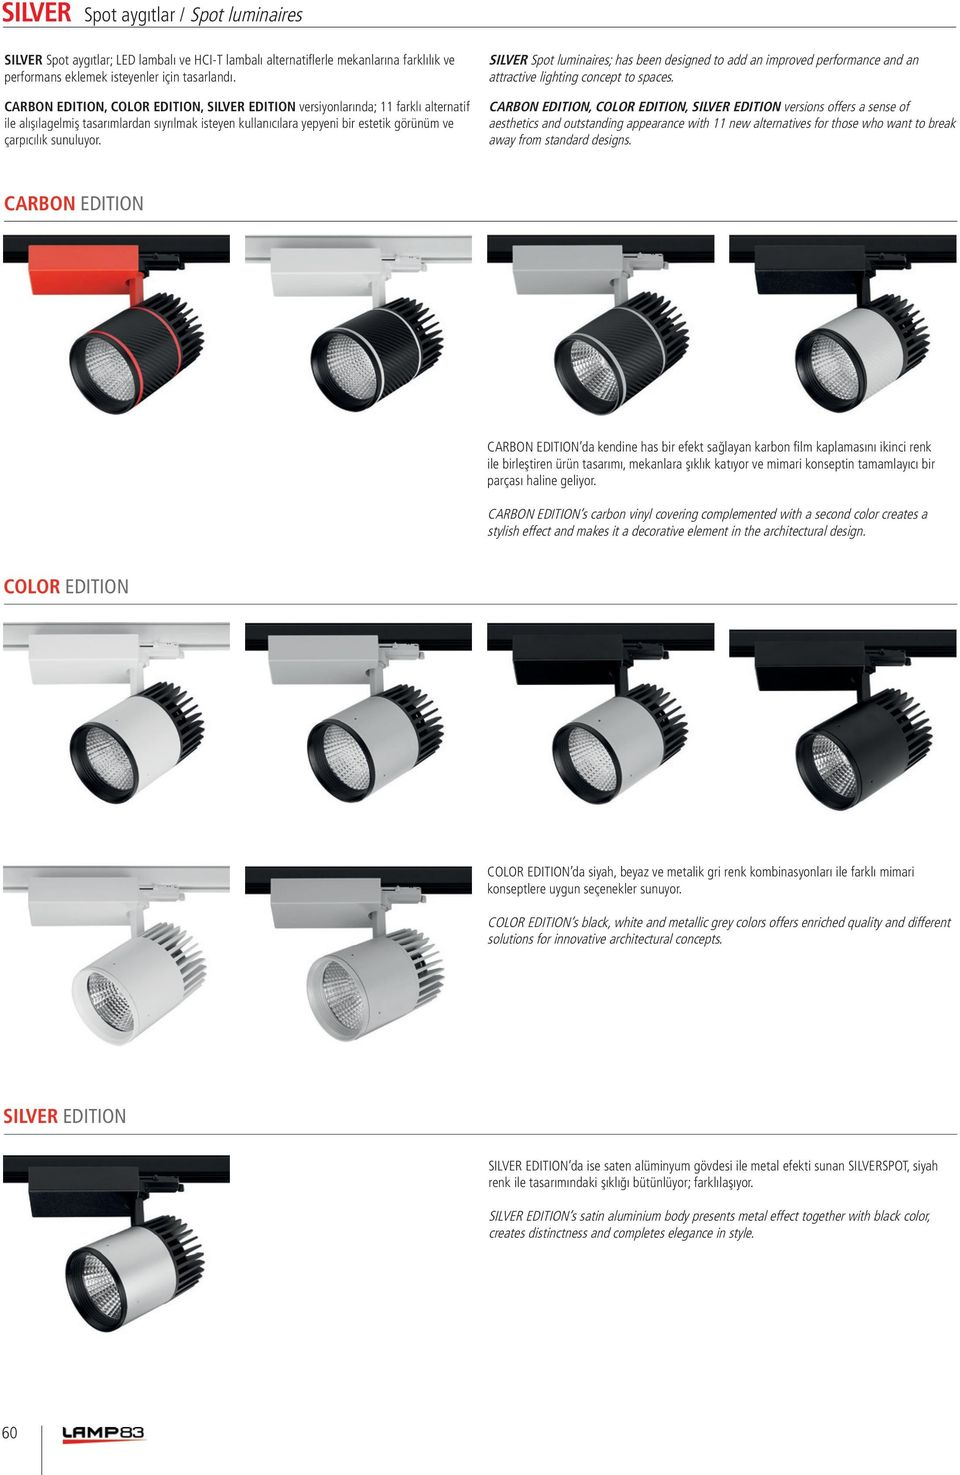 SILVER Spot luminaires; has been designed to add an improved performance and an attractive lighting concept to spaces.